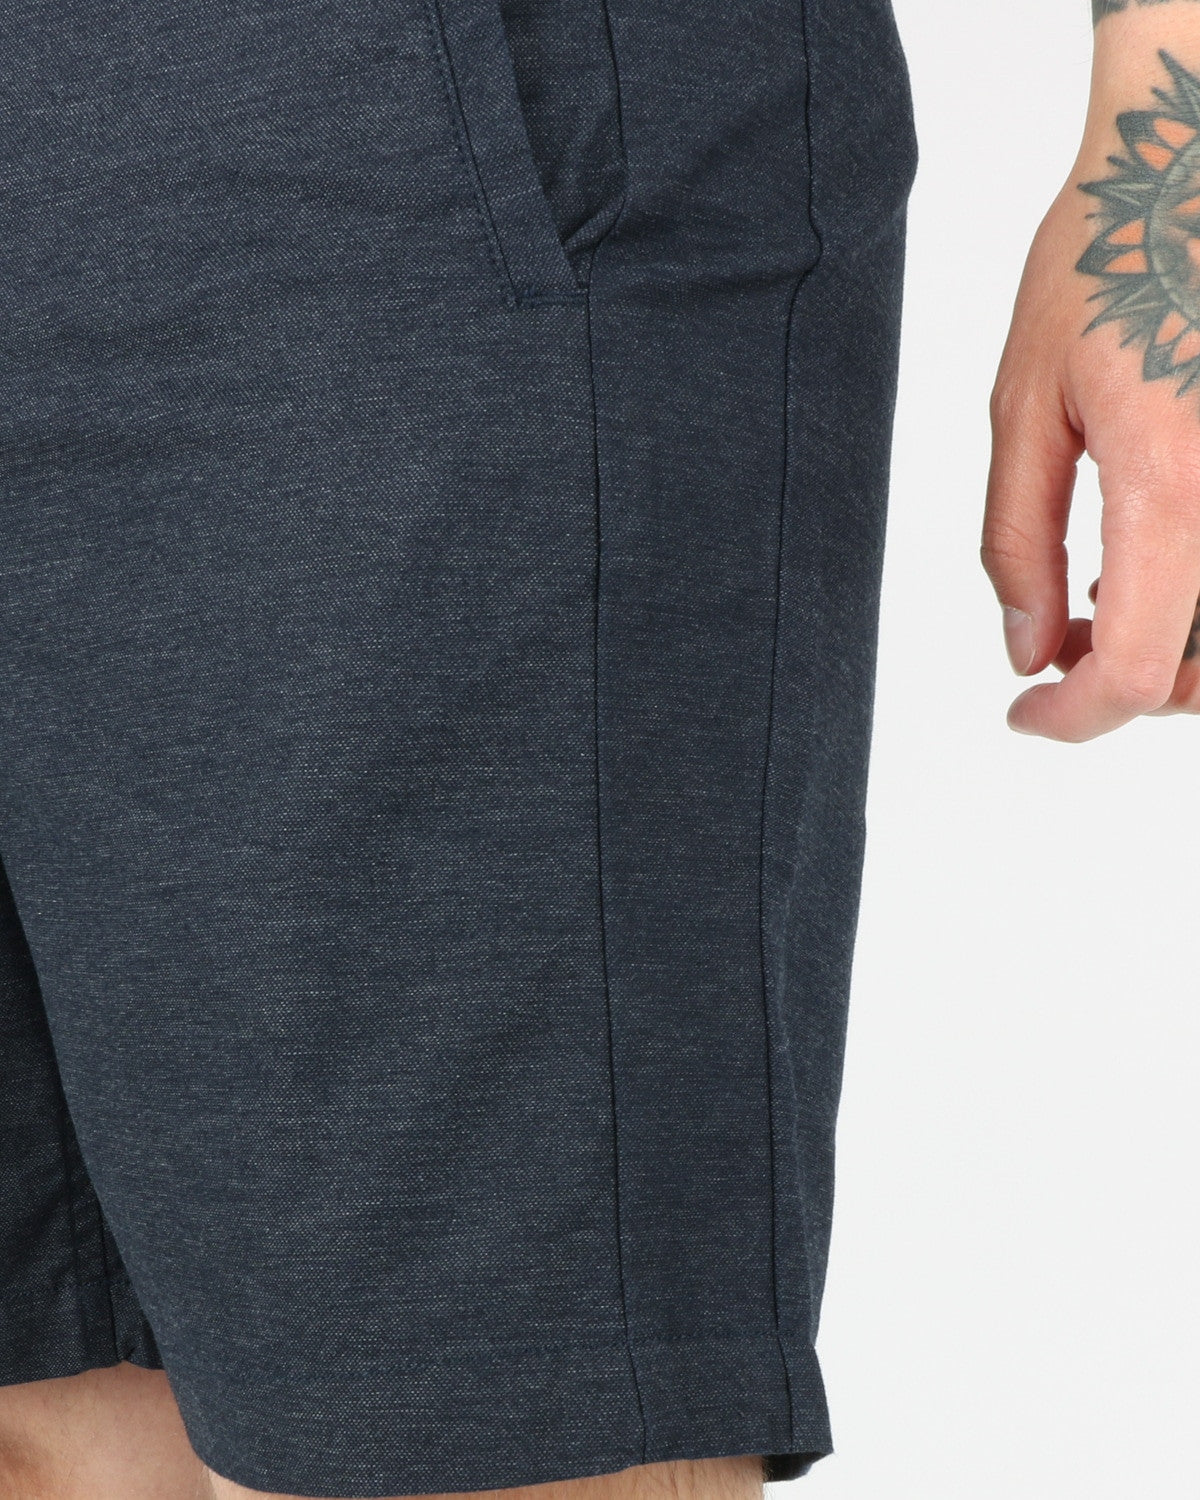 journal clothing_taper theo oxford shorts_navy_view_2_3